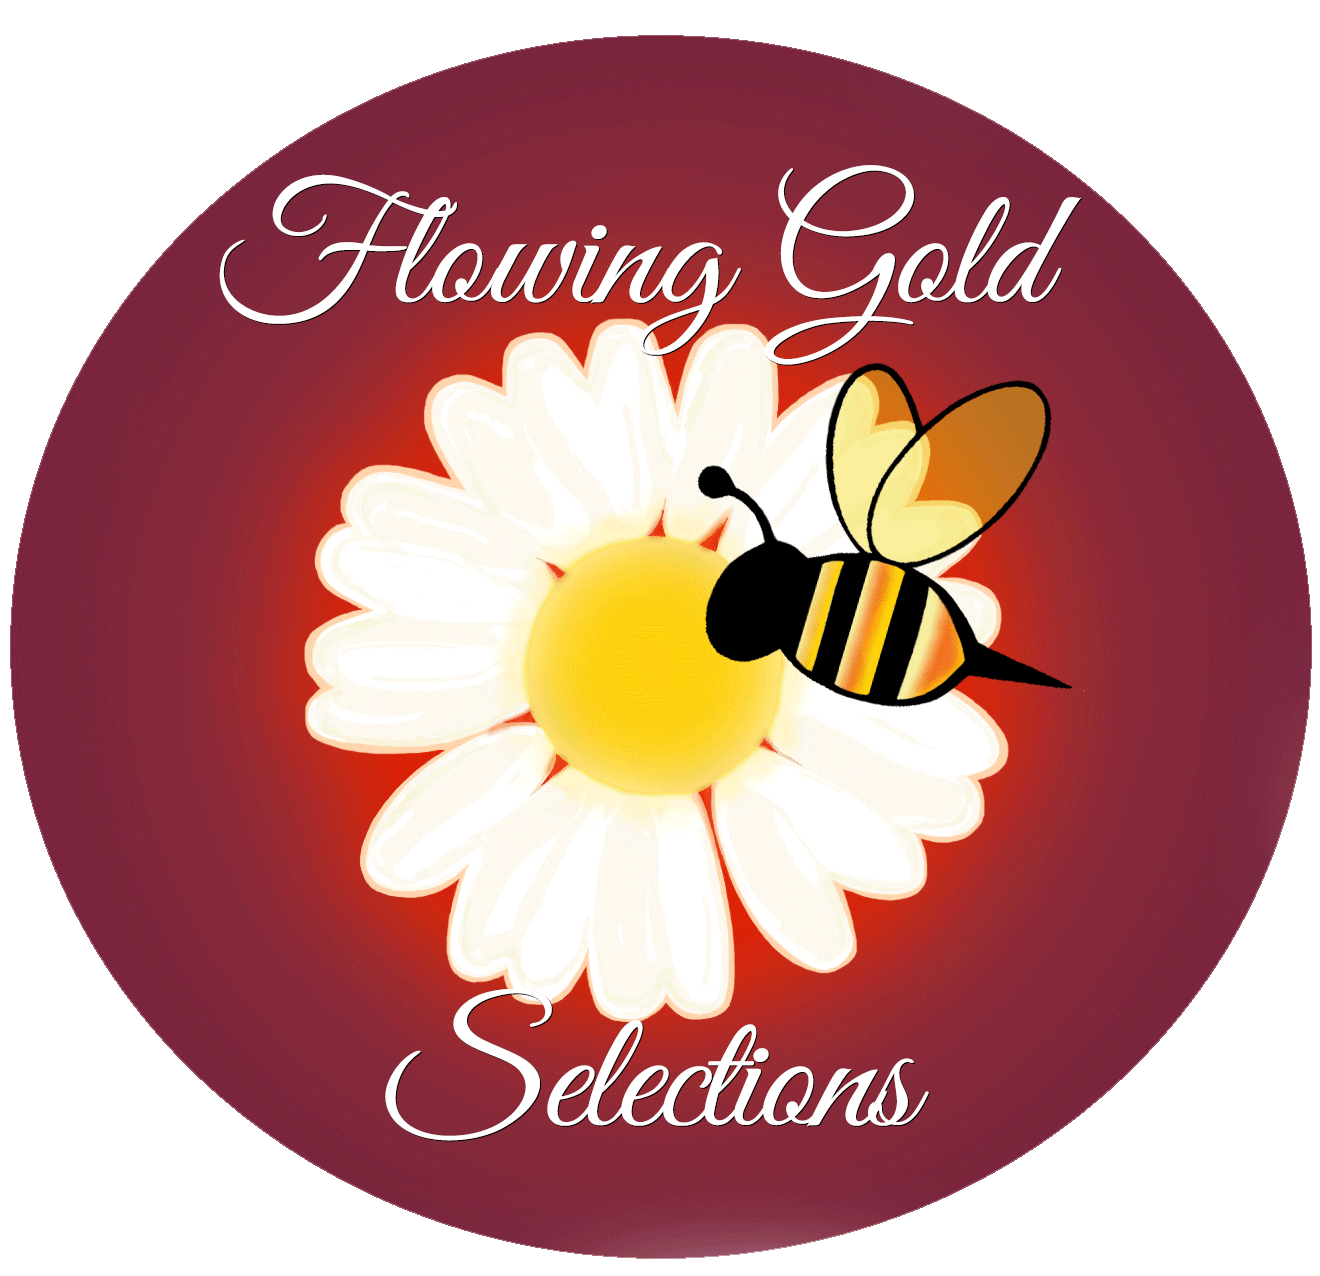 Flowing Gold Selections